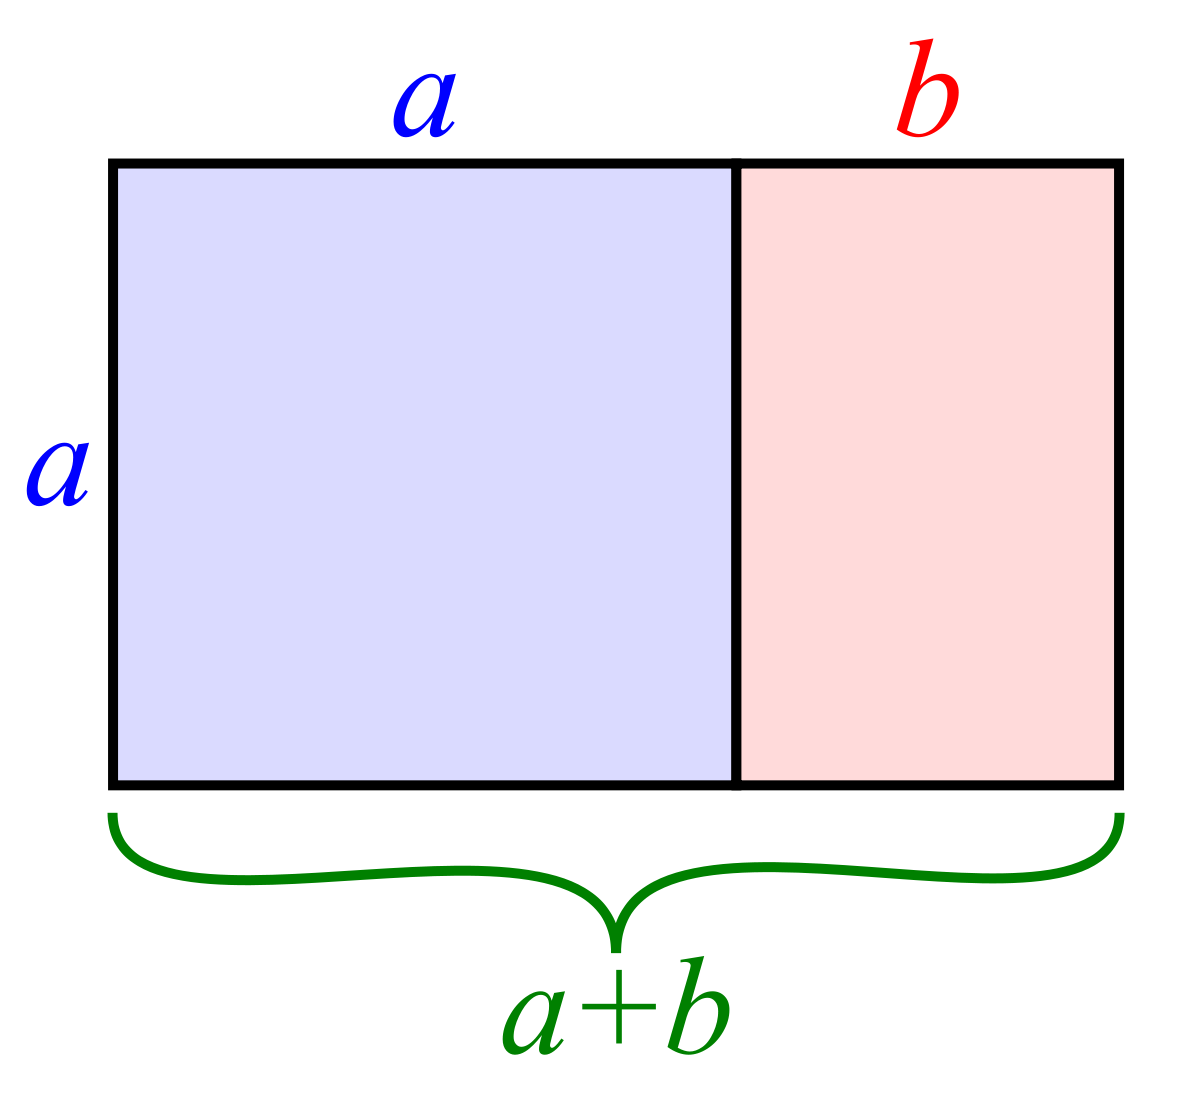 Drawing rectangles hollow. Golden rectangle wikipedia